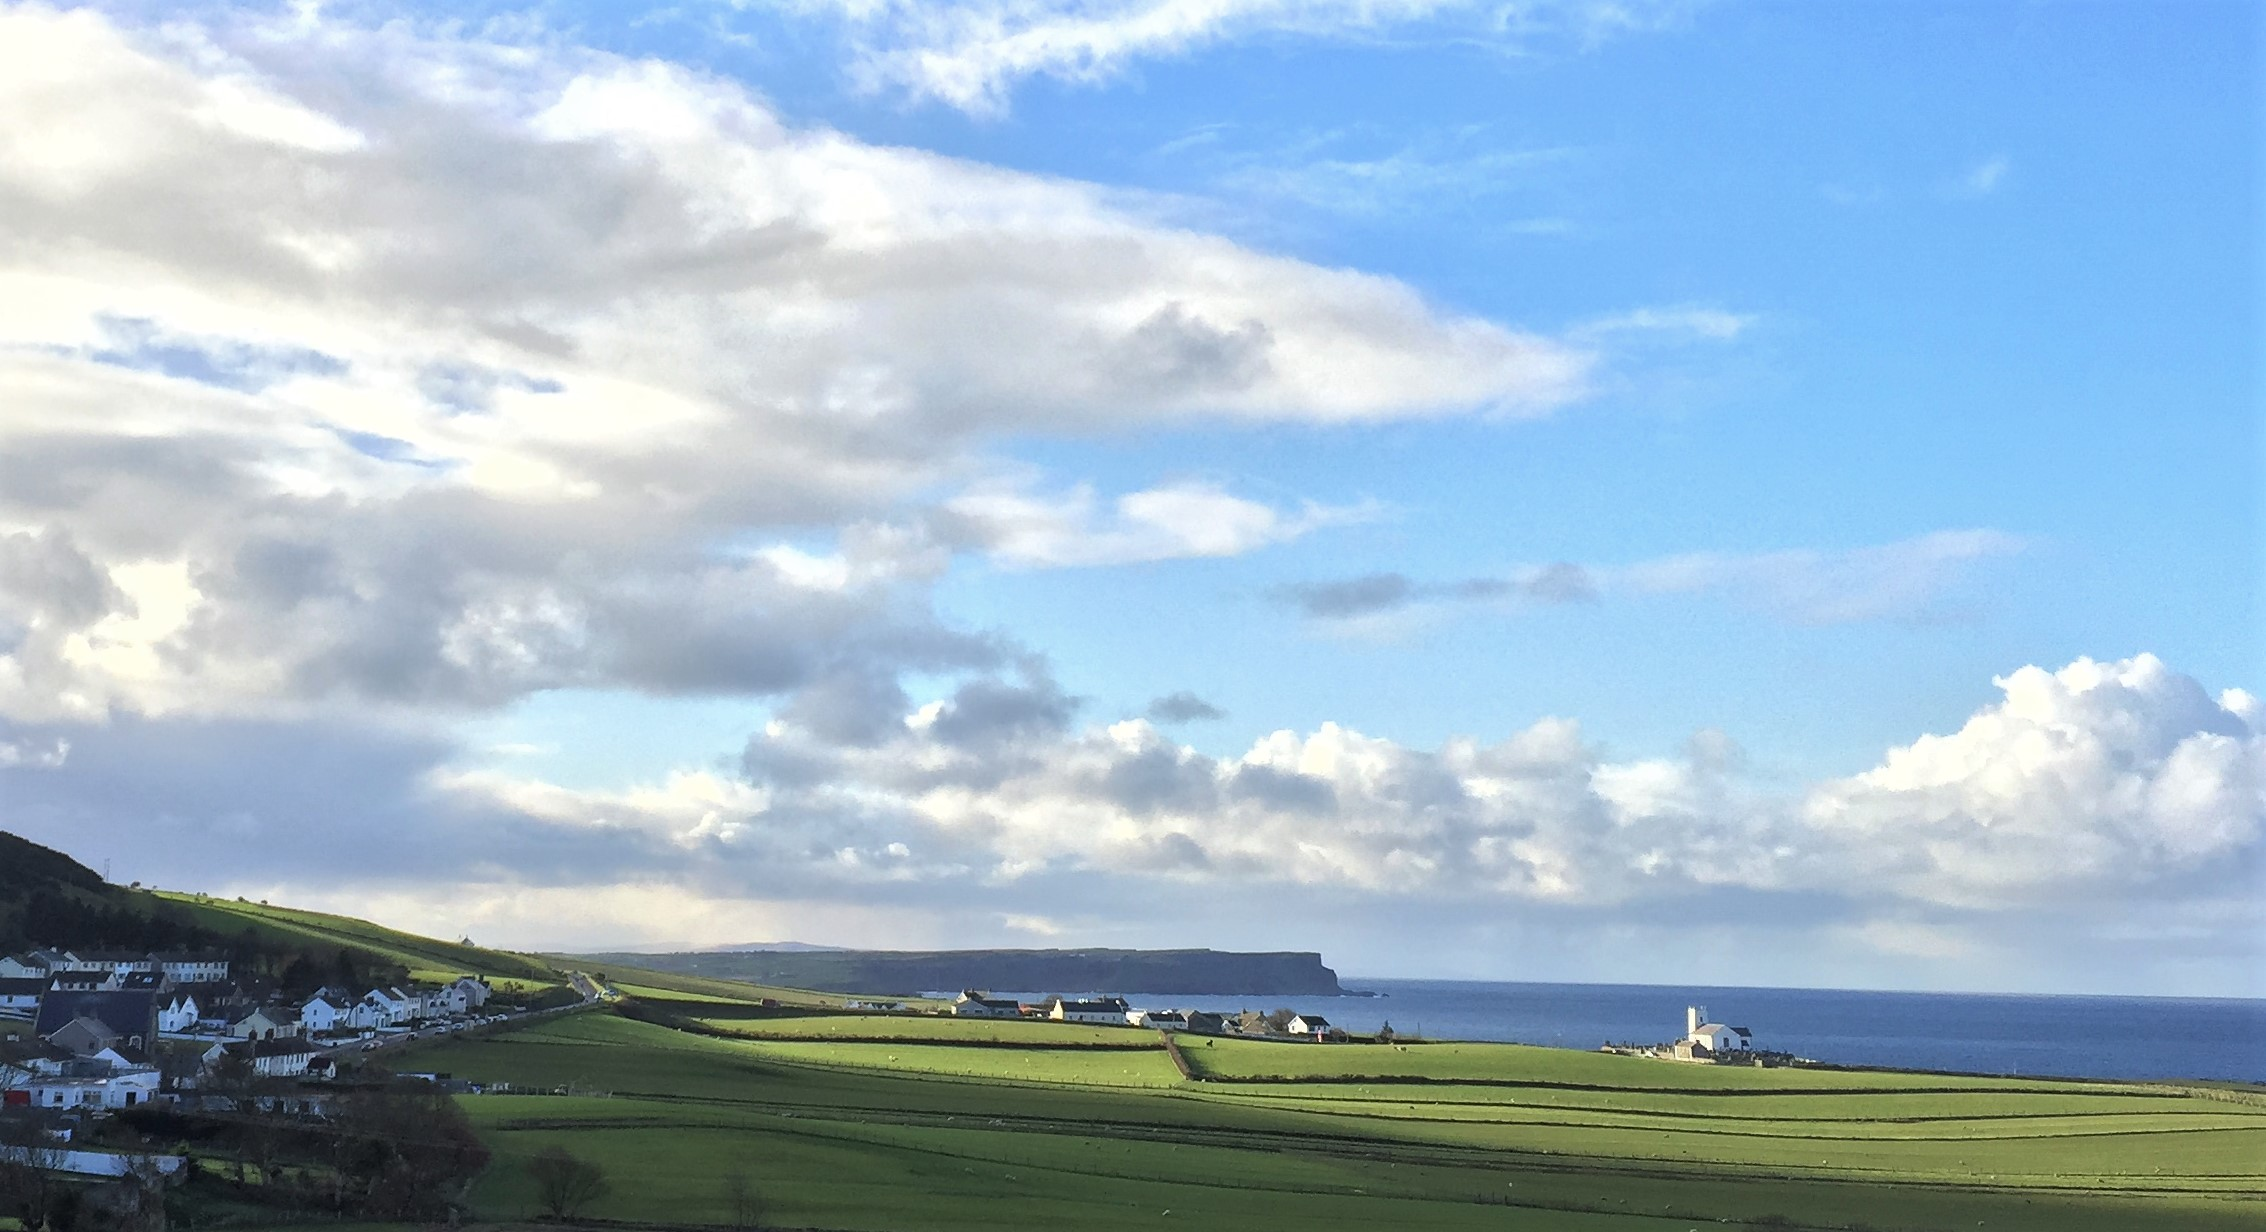 ^Approaching Ballintoy from Carrick-A-Rede. Ballintoy Church to the right, Giant's Causeway cliffs in the distance.